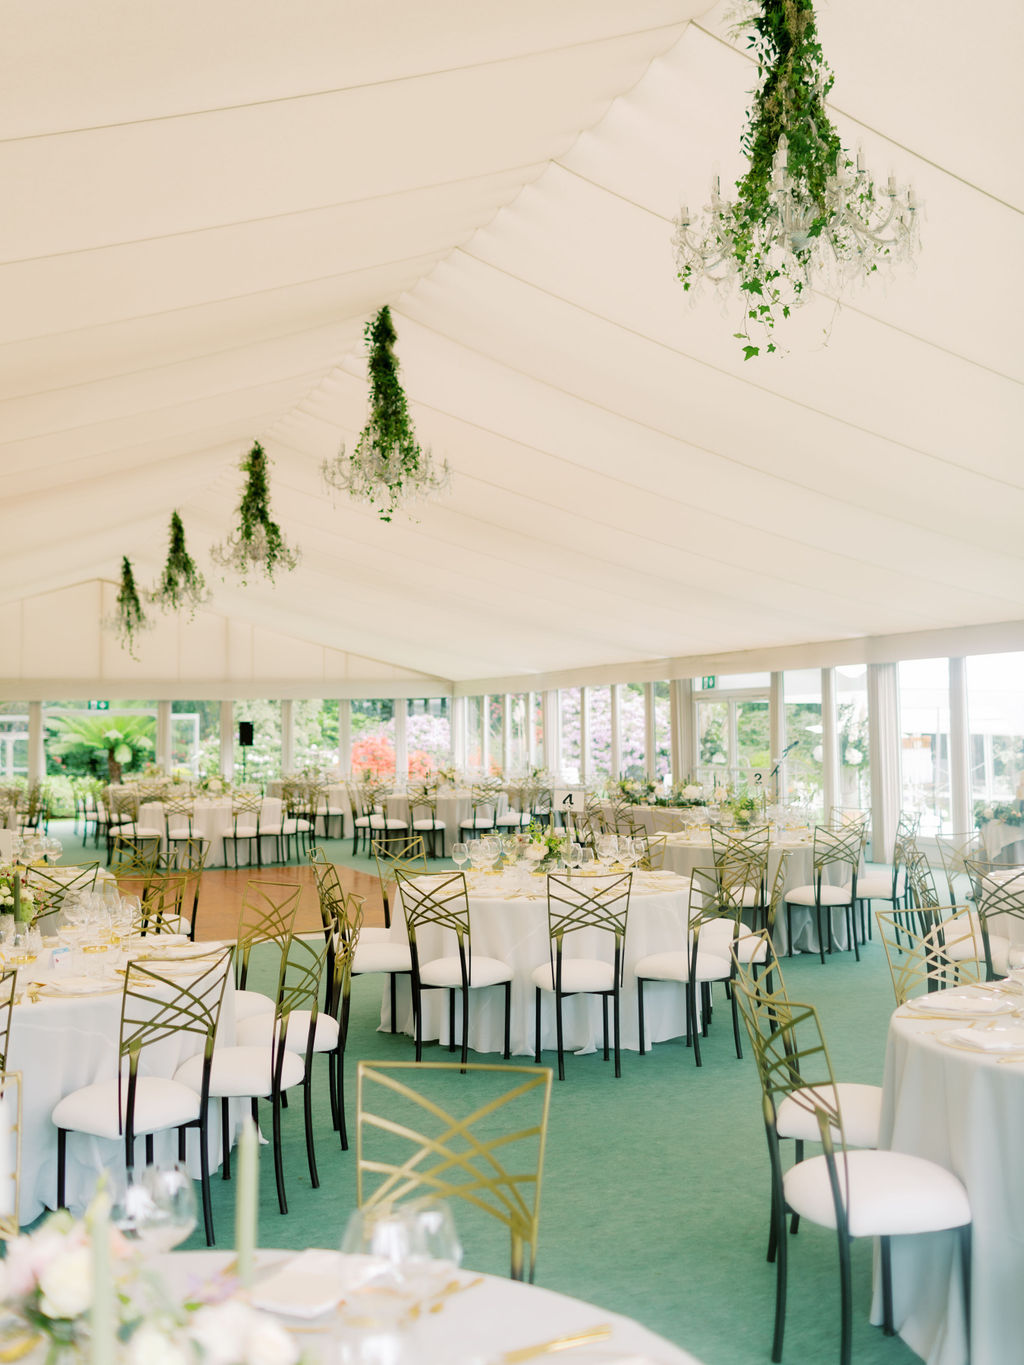 Bespoke luxury marquee